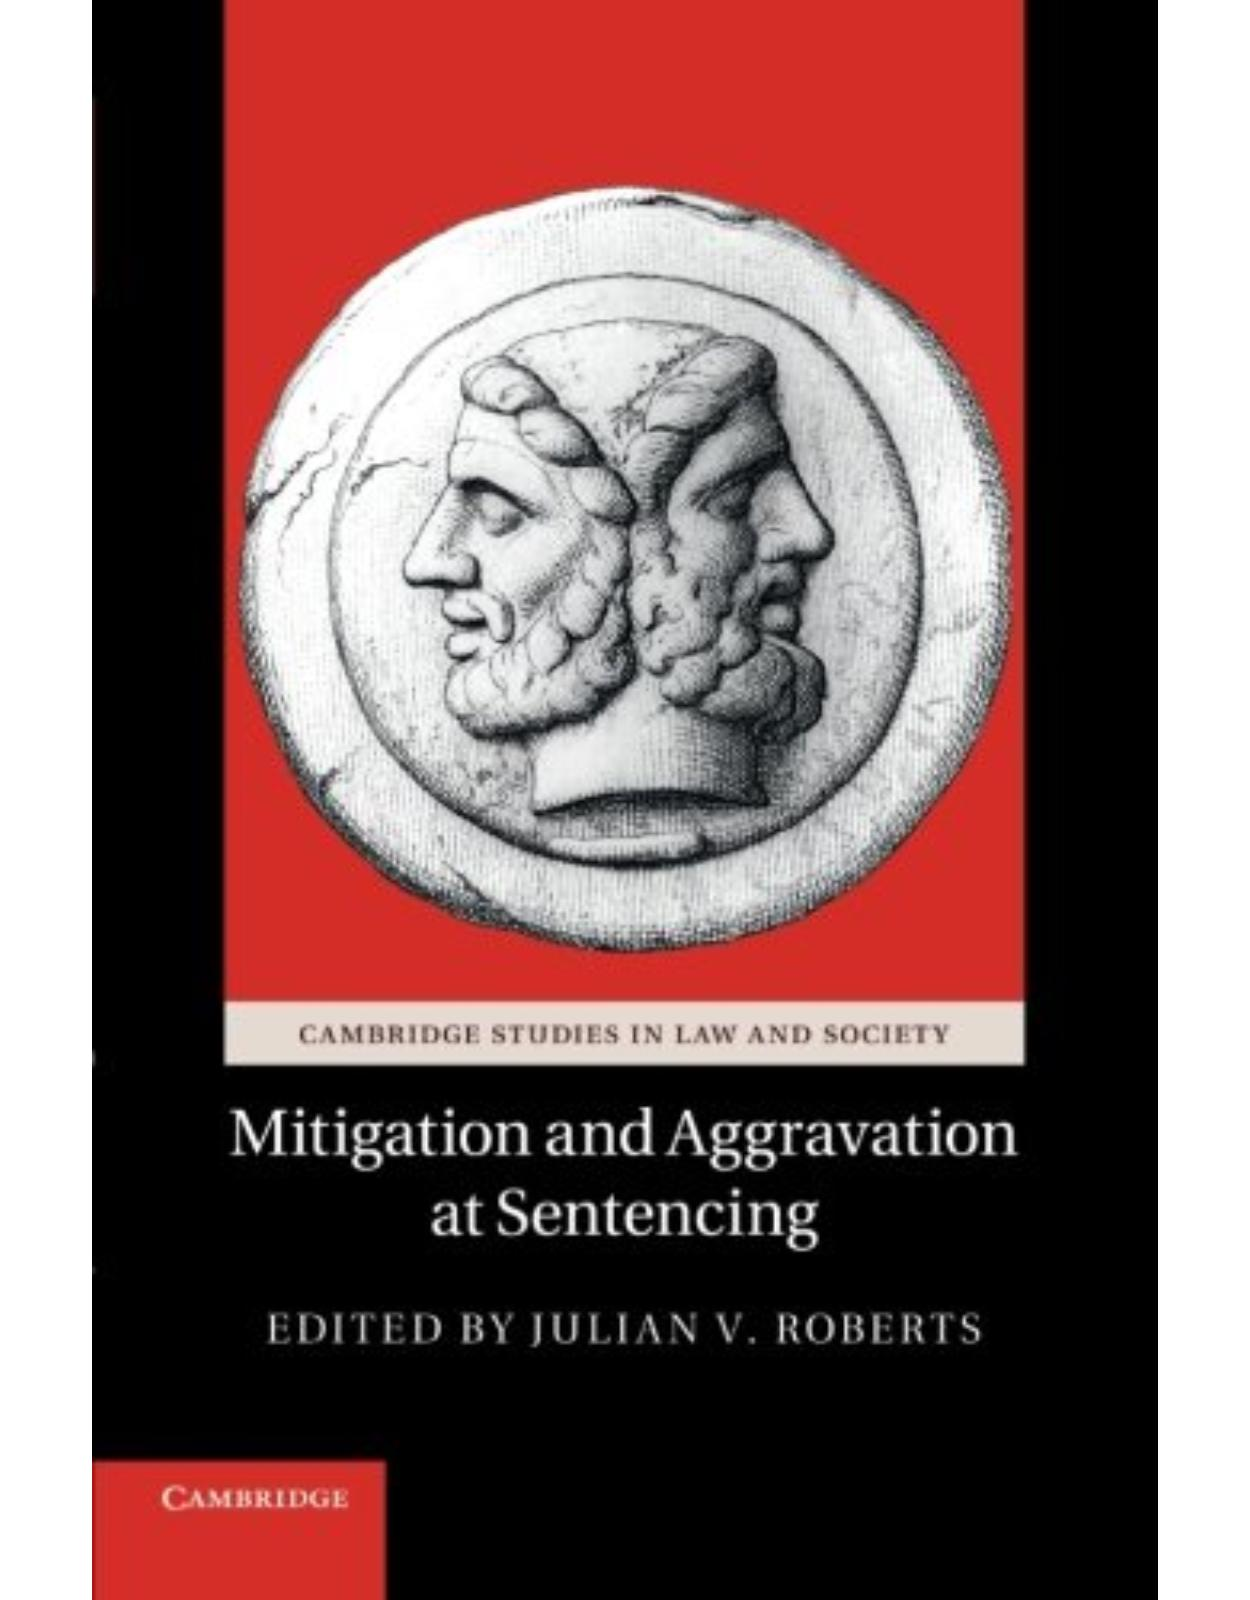 Mitigation and Aggravation at Sentencing (Cambridge Studies in Law and Society)